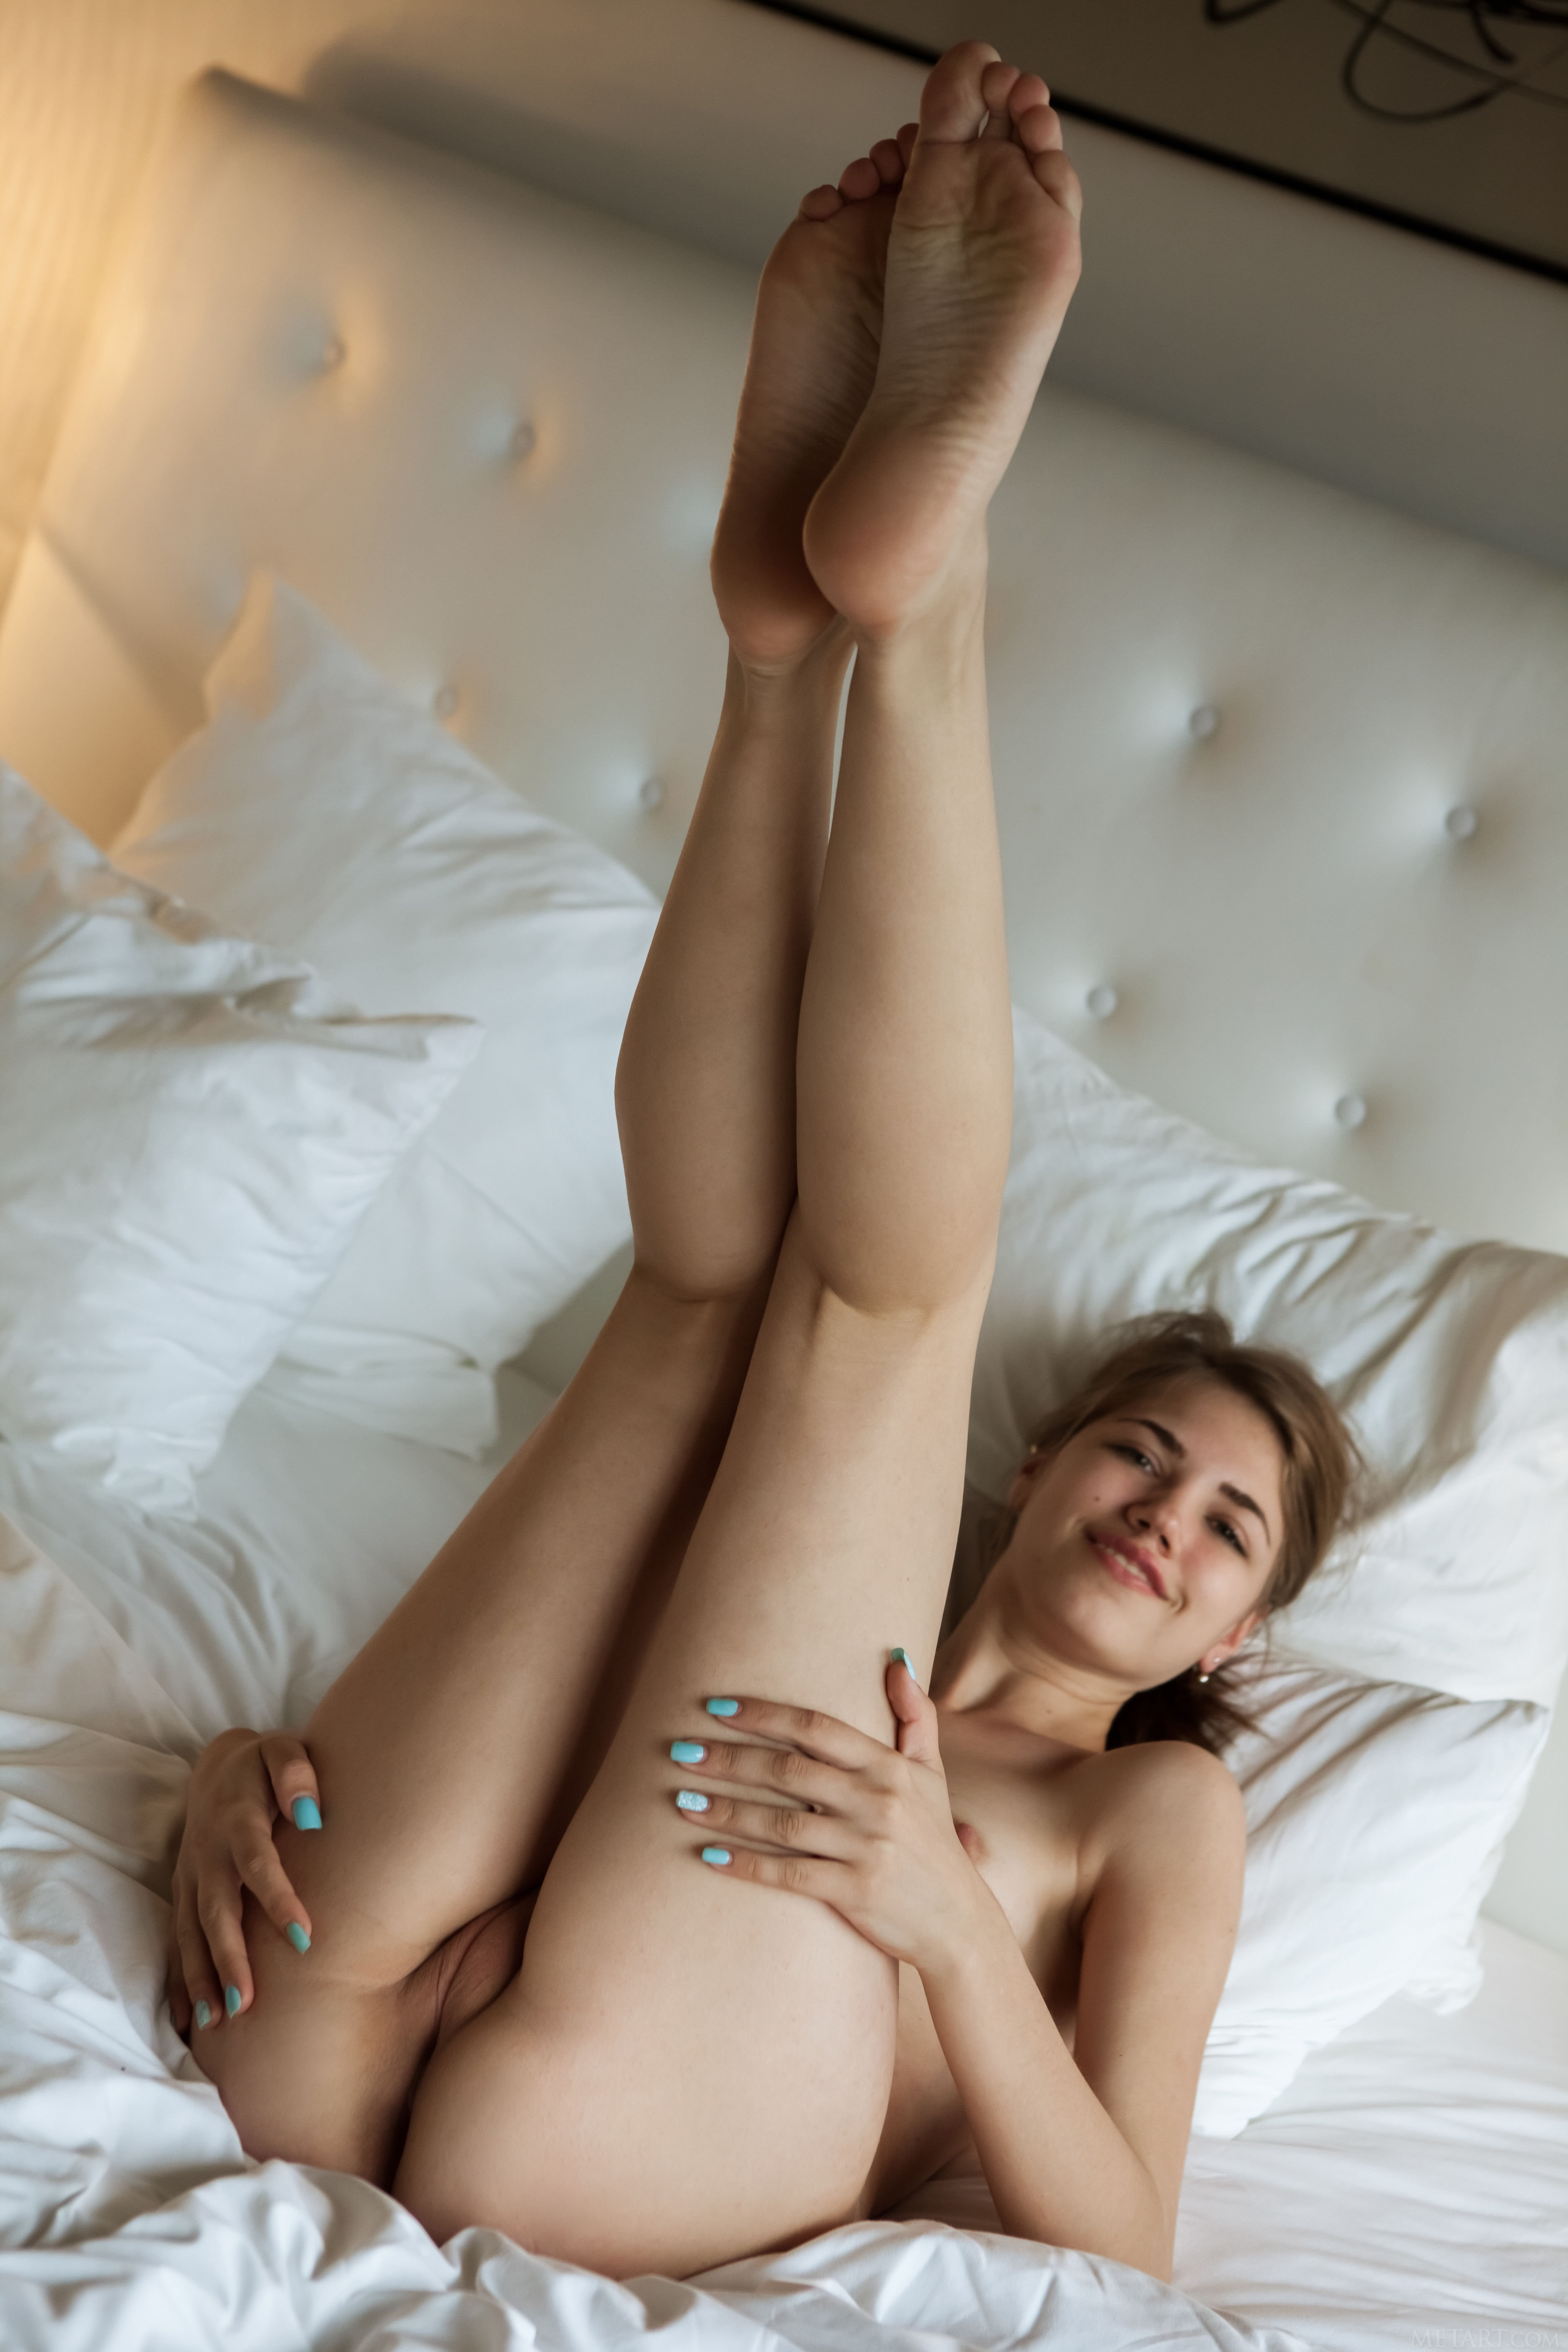 Free download pornographic photos fullsize nude vids